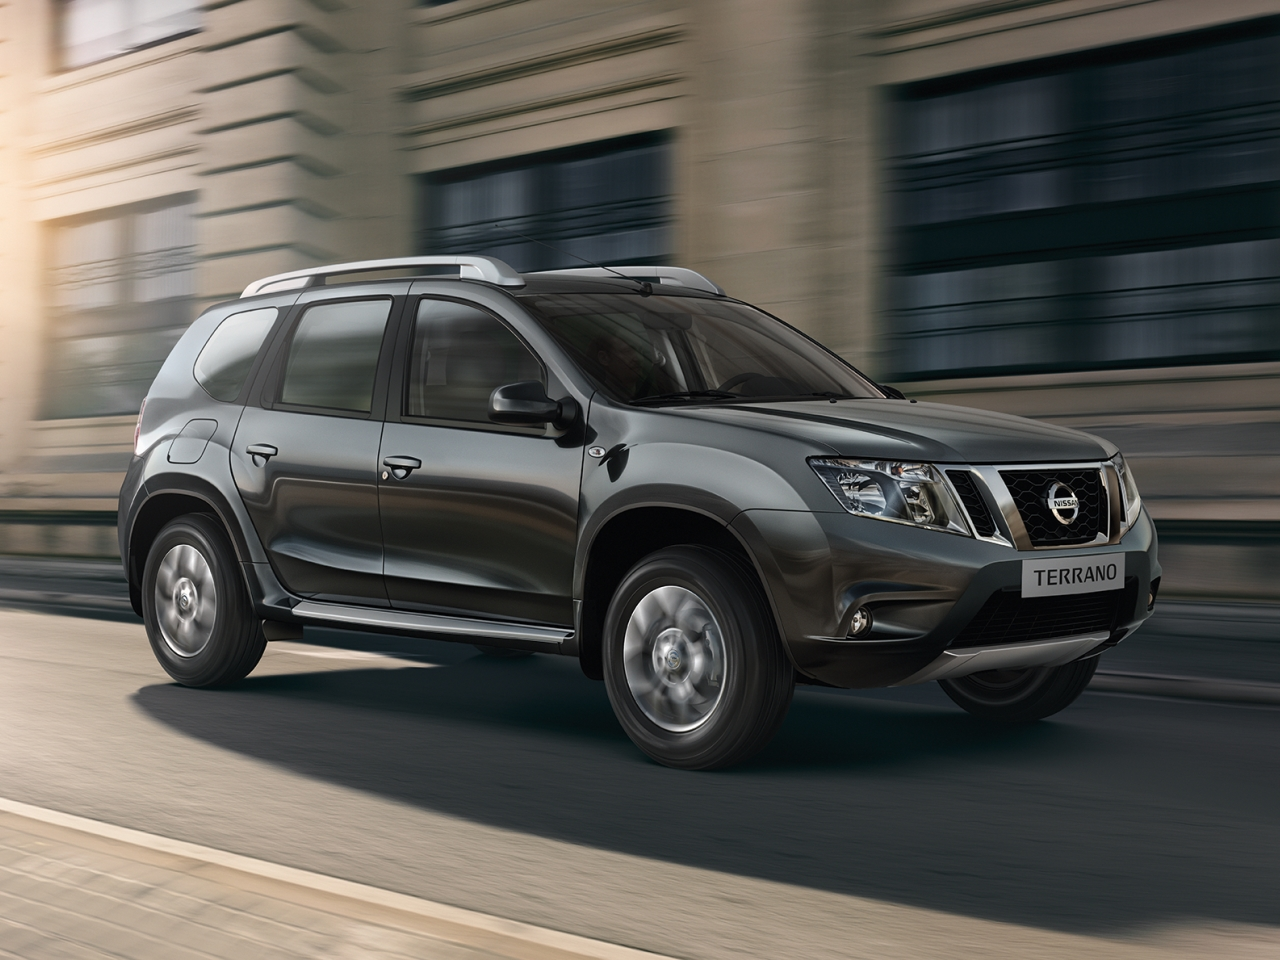 Xterra For Sale >> New Nissan Terrano SUV Goes On Sale in Russia - autoevolution